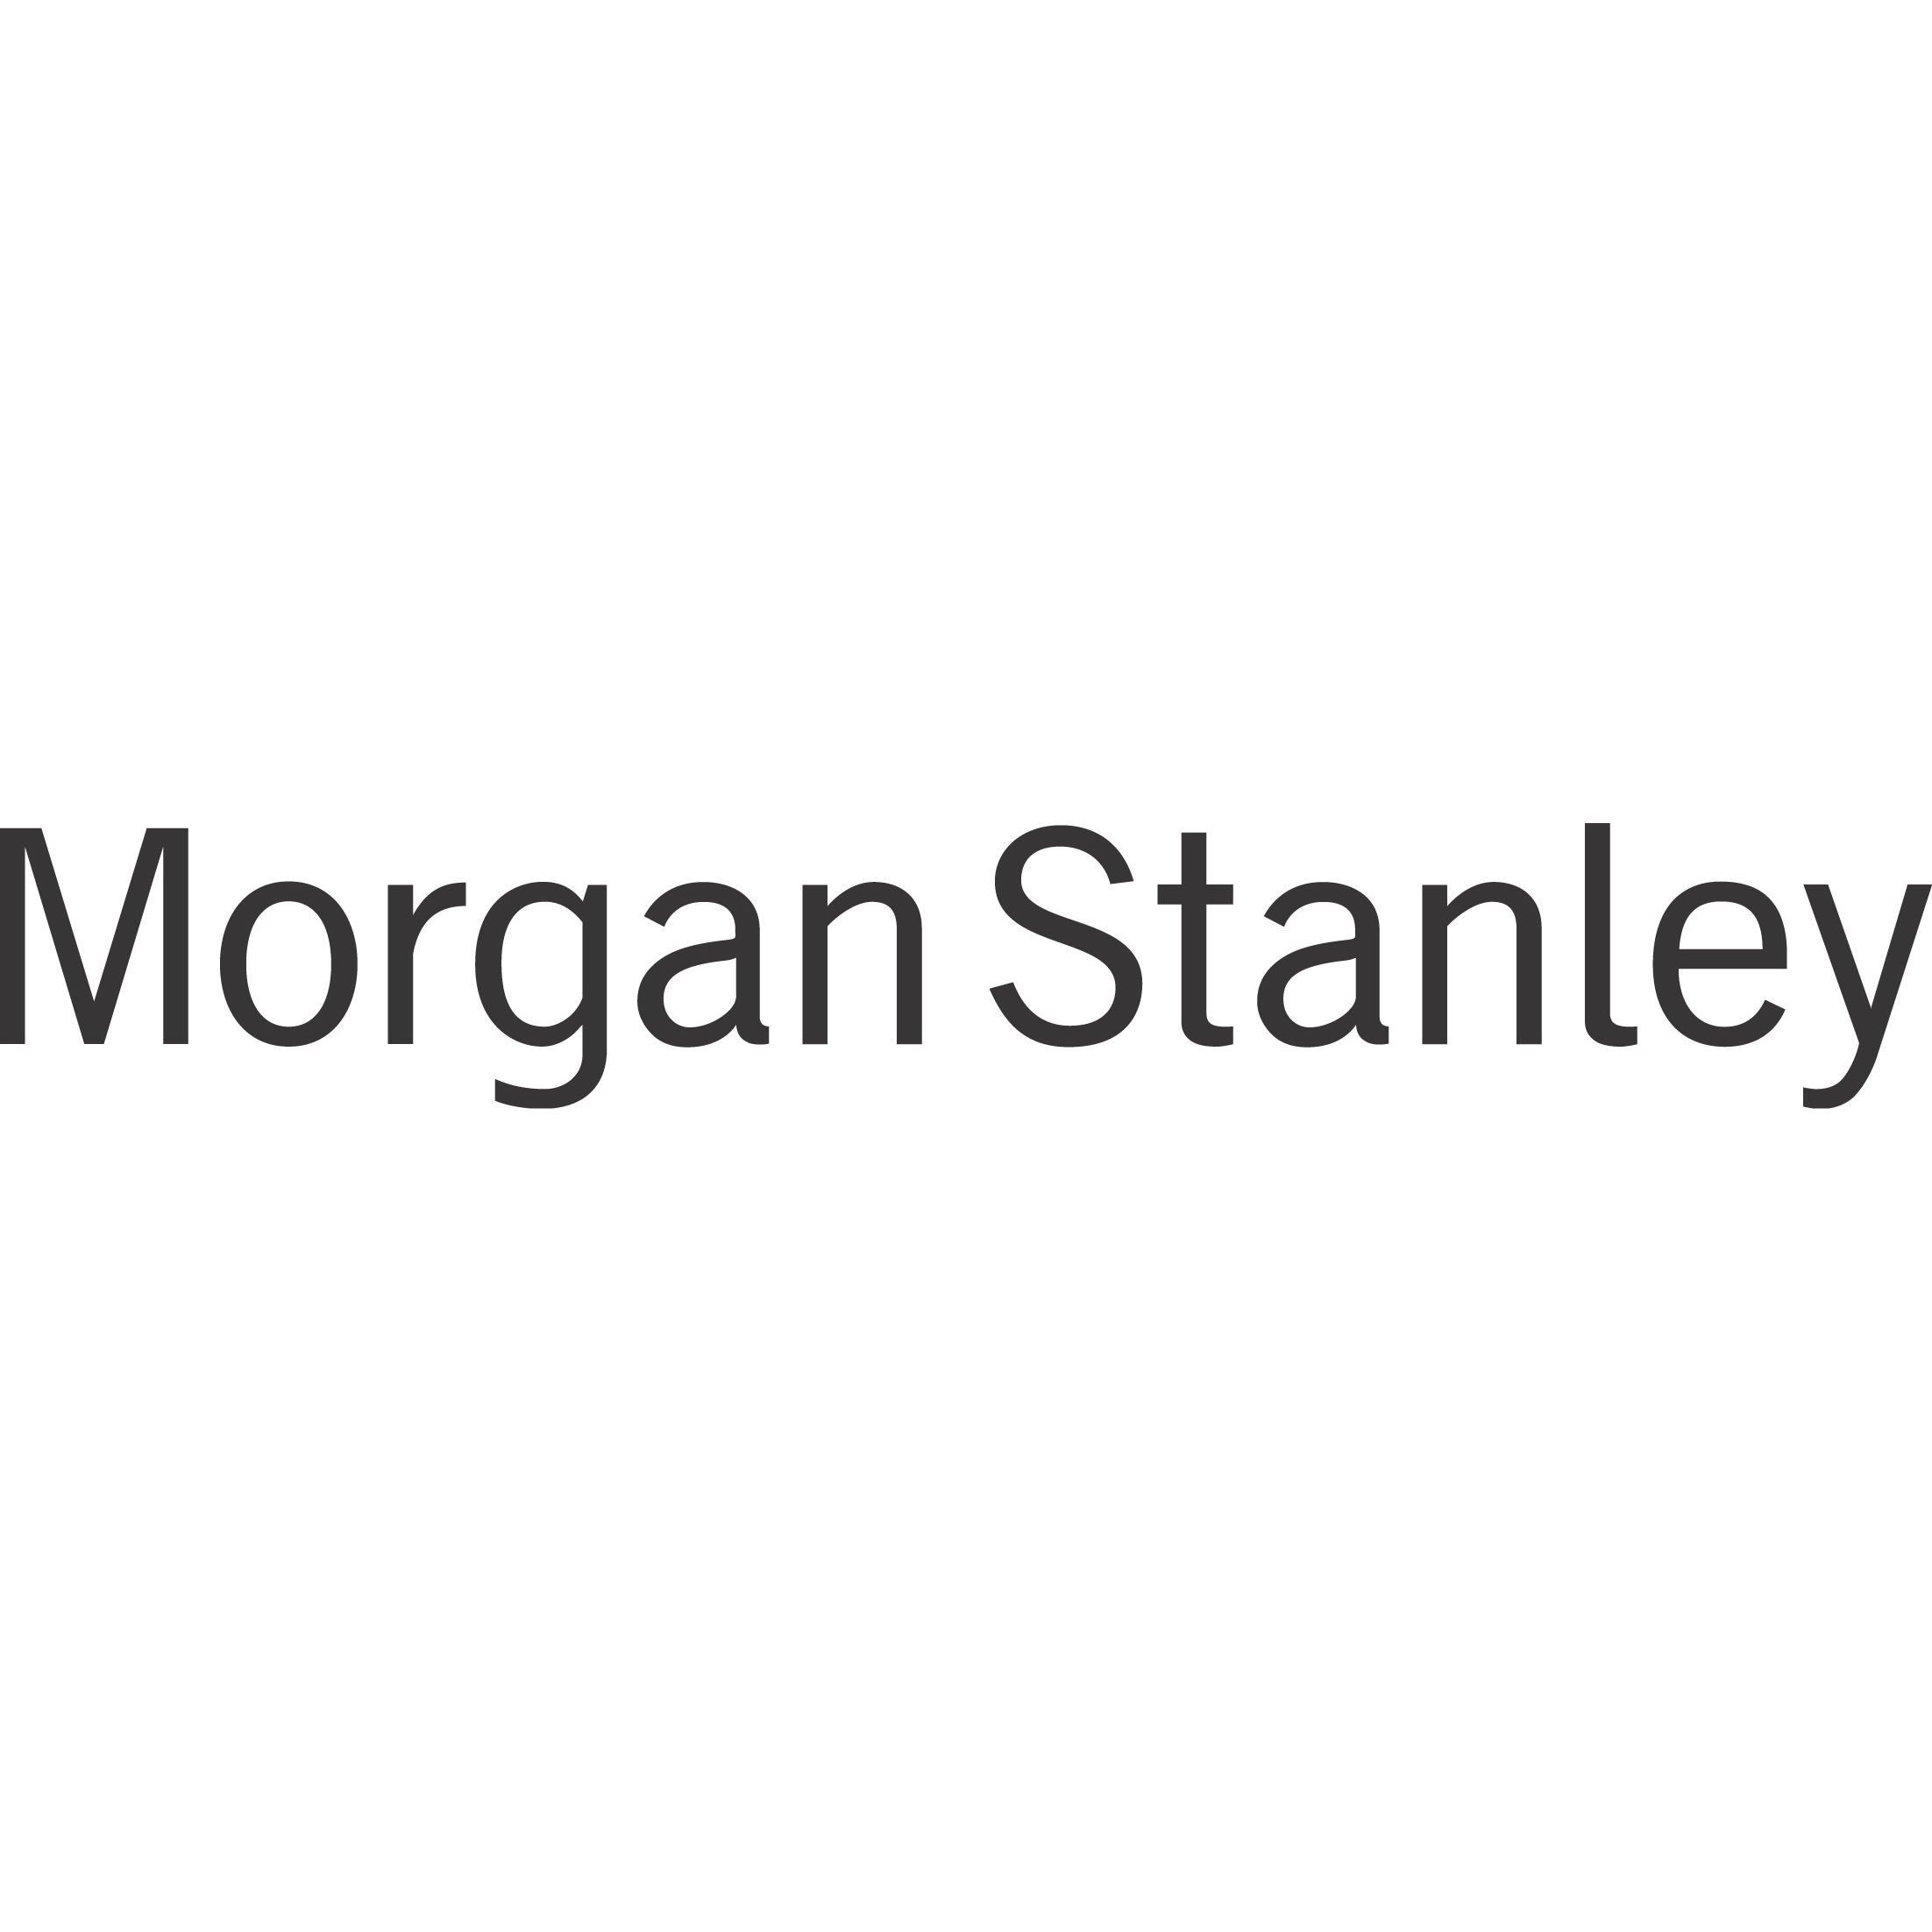 Nicholas DeMartino - Morgan Stanley | Financial Advisor in Saratoga Springs,New York